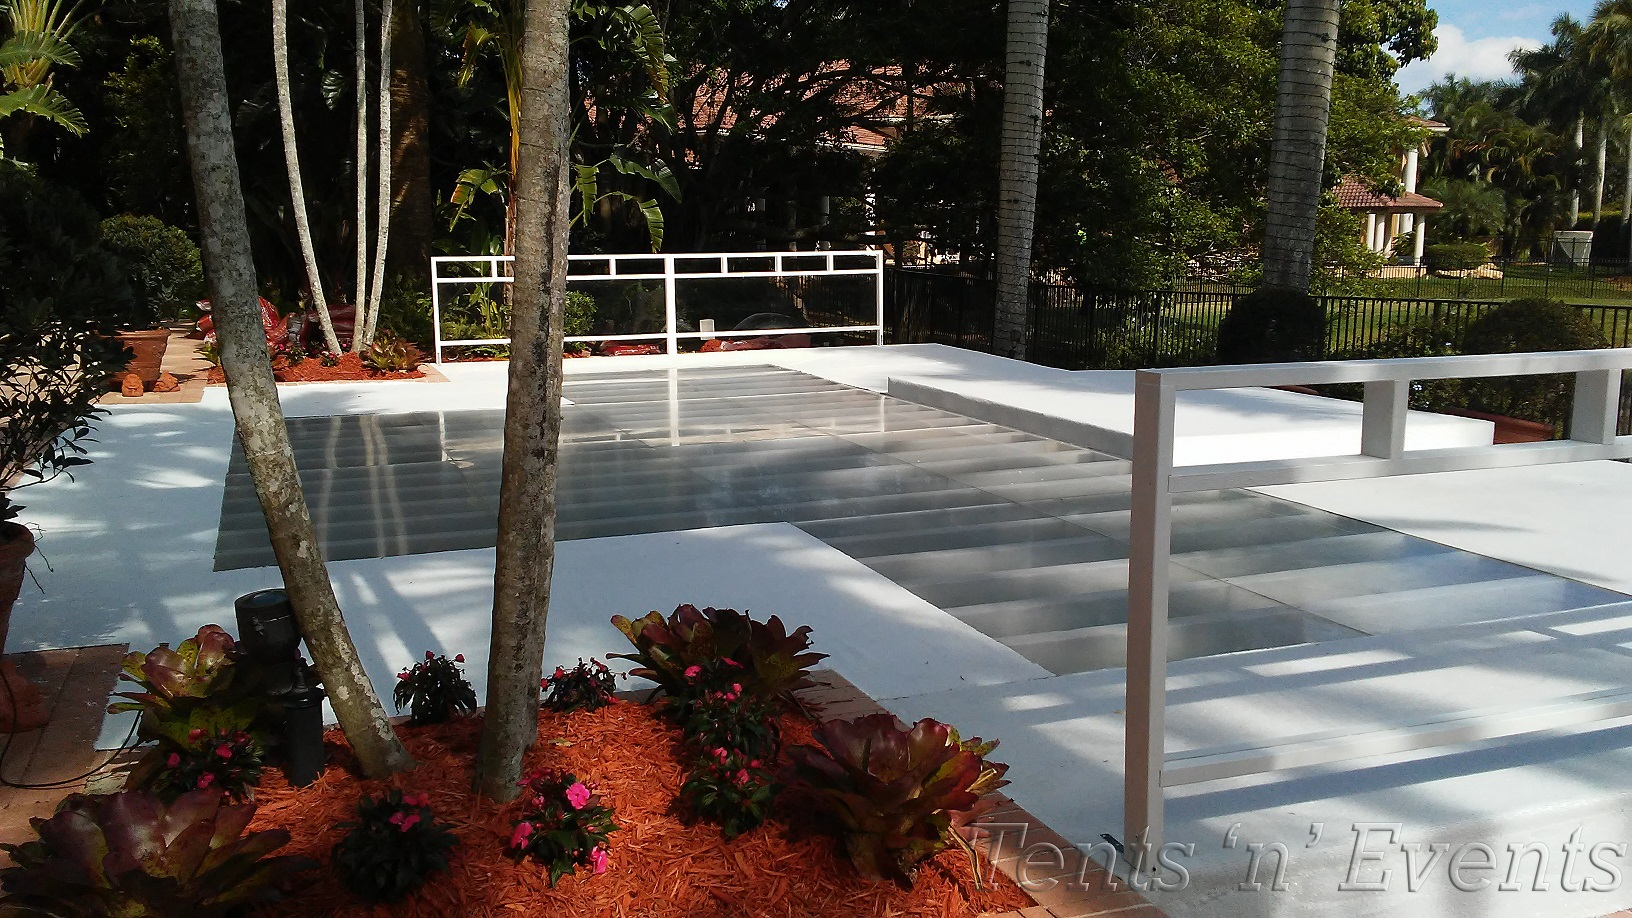 White Carpet and Plexi Glass Insert Pool Cover